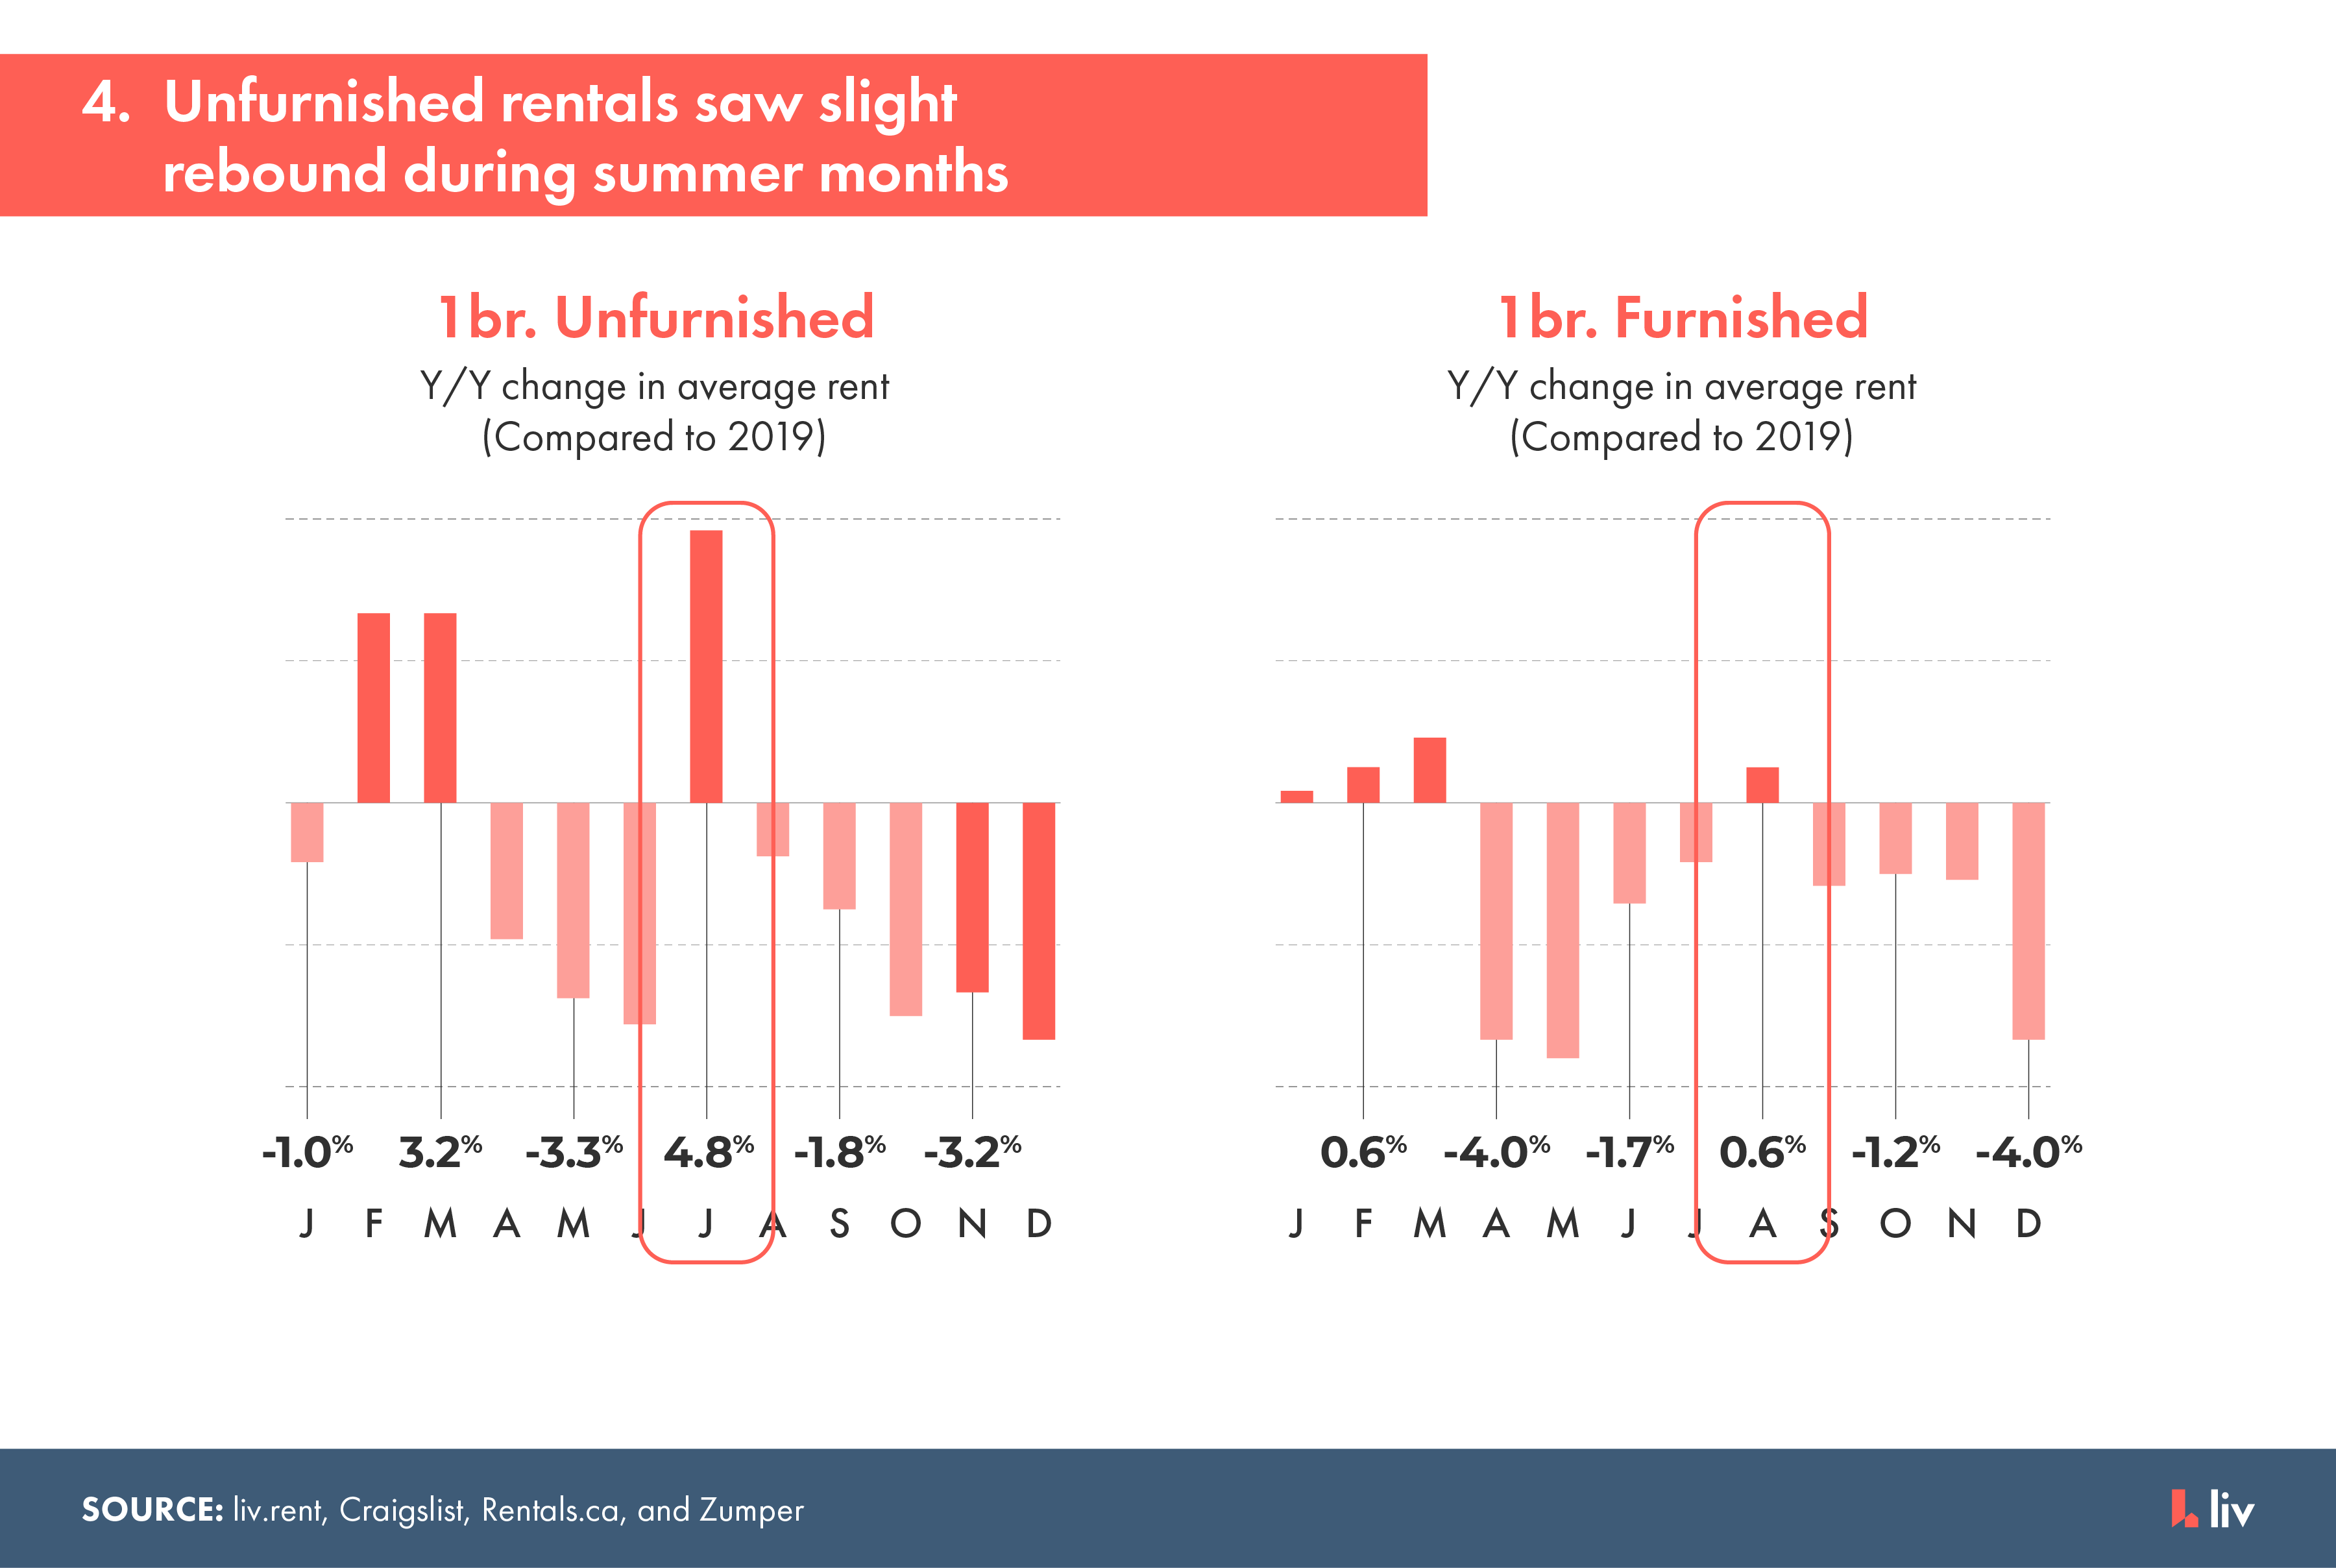 unfurnished rentals in vancouver saw a slight rebound during the summer months in 2020